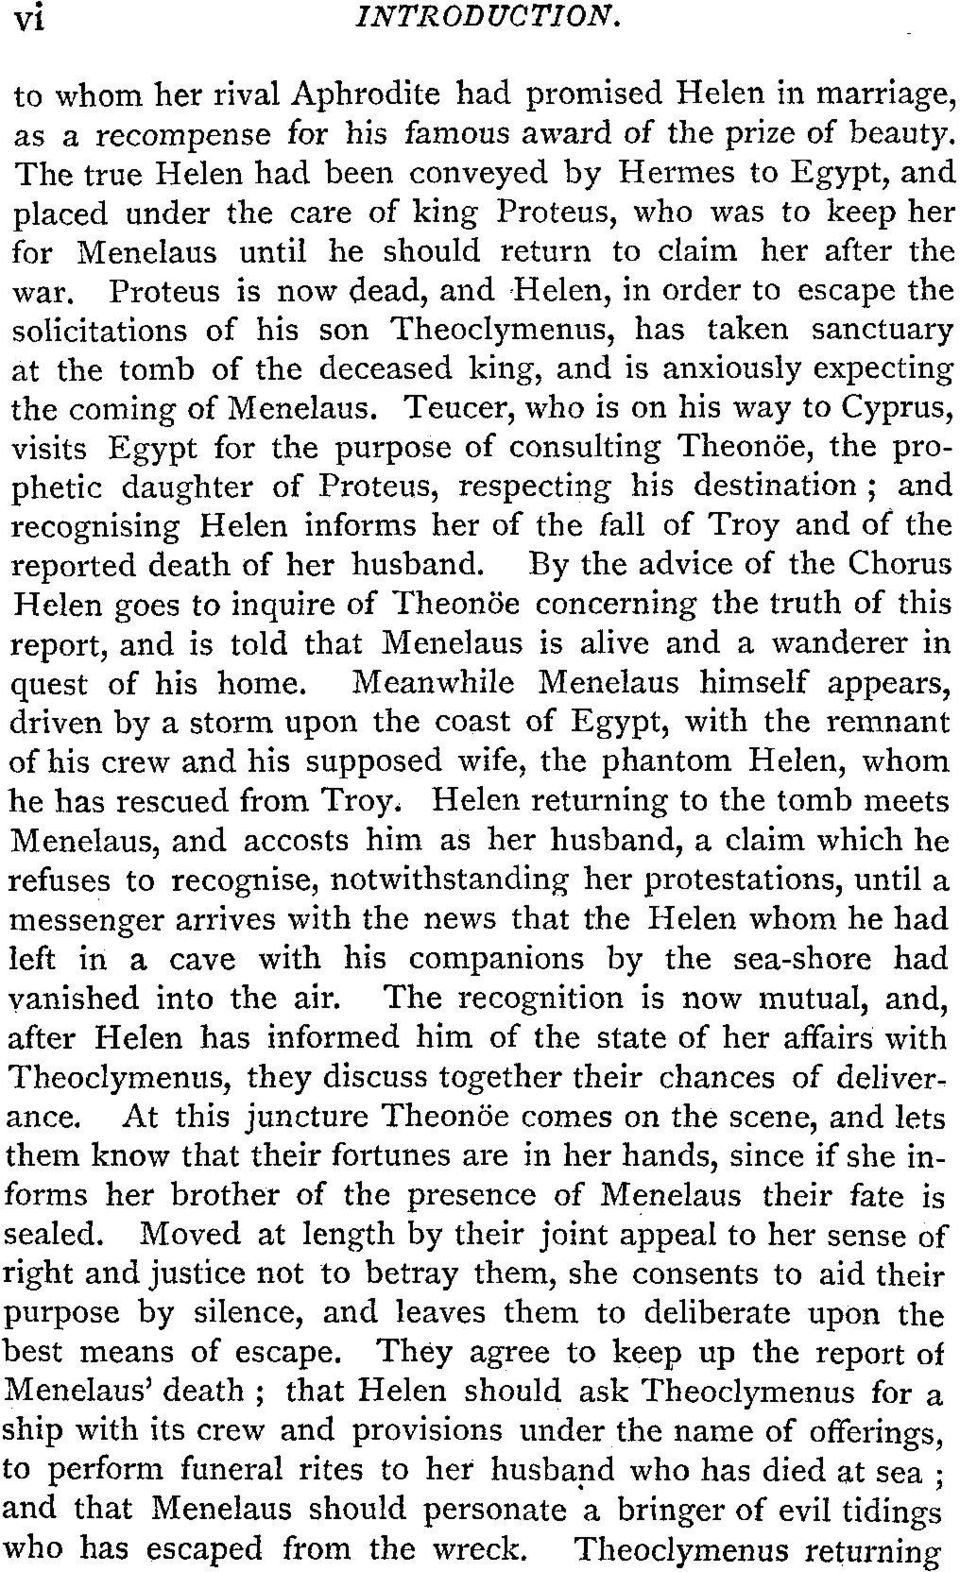 Proteus is now dead, and Helen, in order to escape the solicitations of his son Theoclymenus, has taken sanctuary at the tomb of the deceased king, and is anxiously expecting the coming of Menelaus.